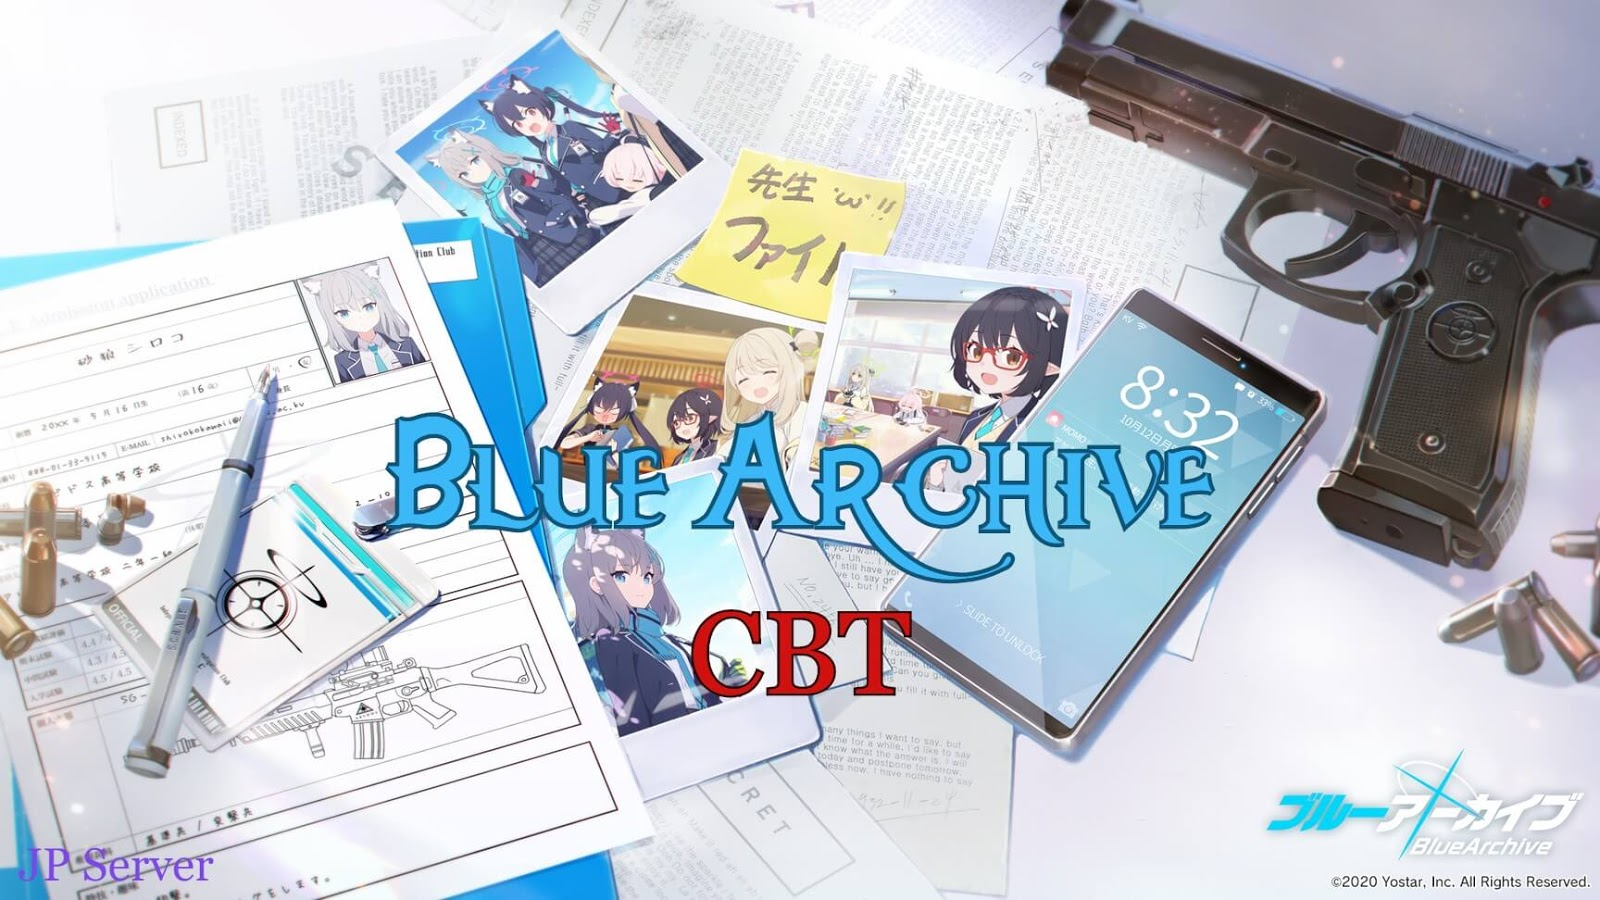 Blue Archive - New Waifu Mobile Game from Yostar